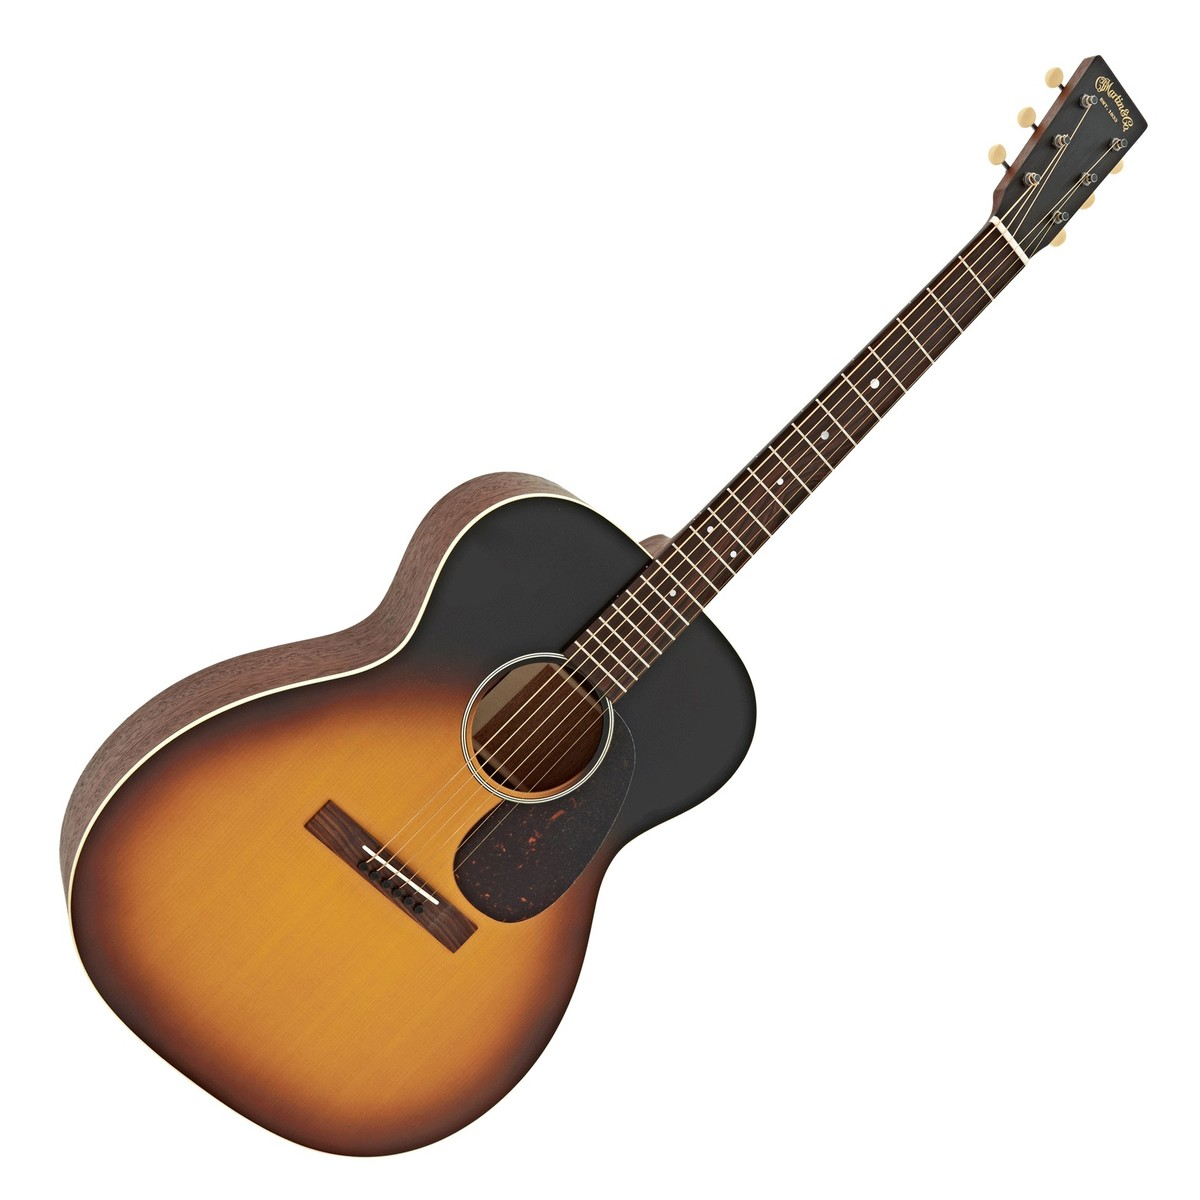 Click to view product details and reviews for Martin 000 17e Electro Acoustic Guitar Whiskey Sunset Box Opened.